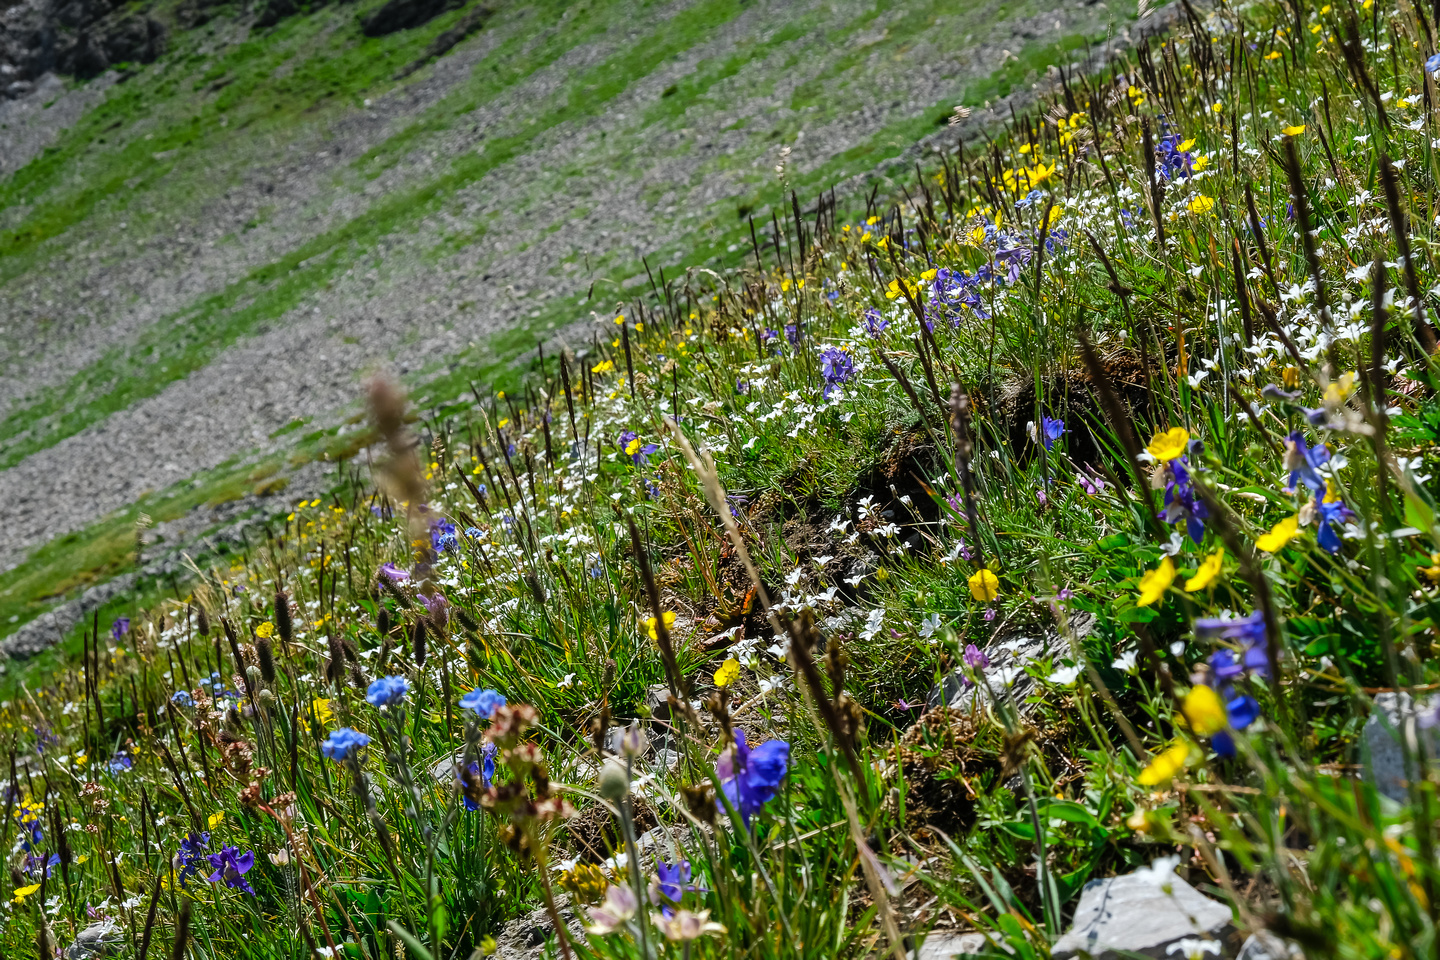 Wildflowers in the alpine meadows under the pass.